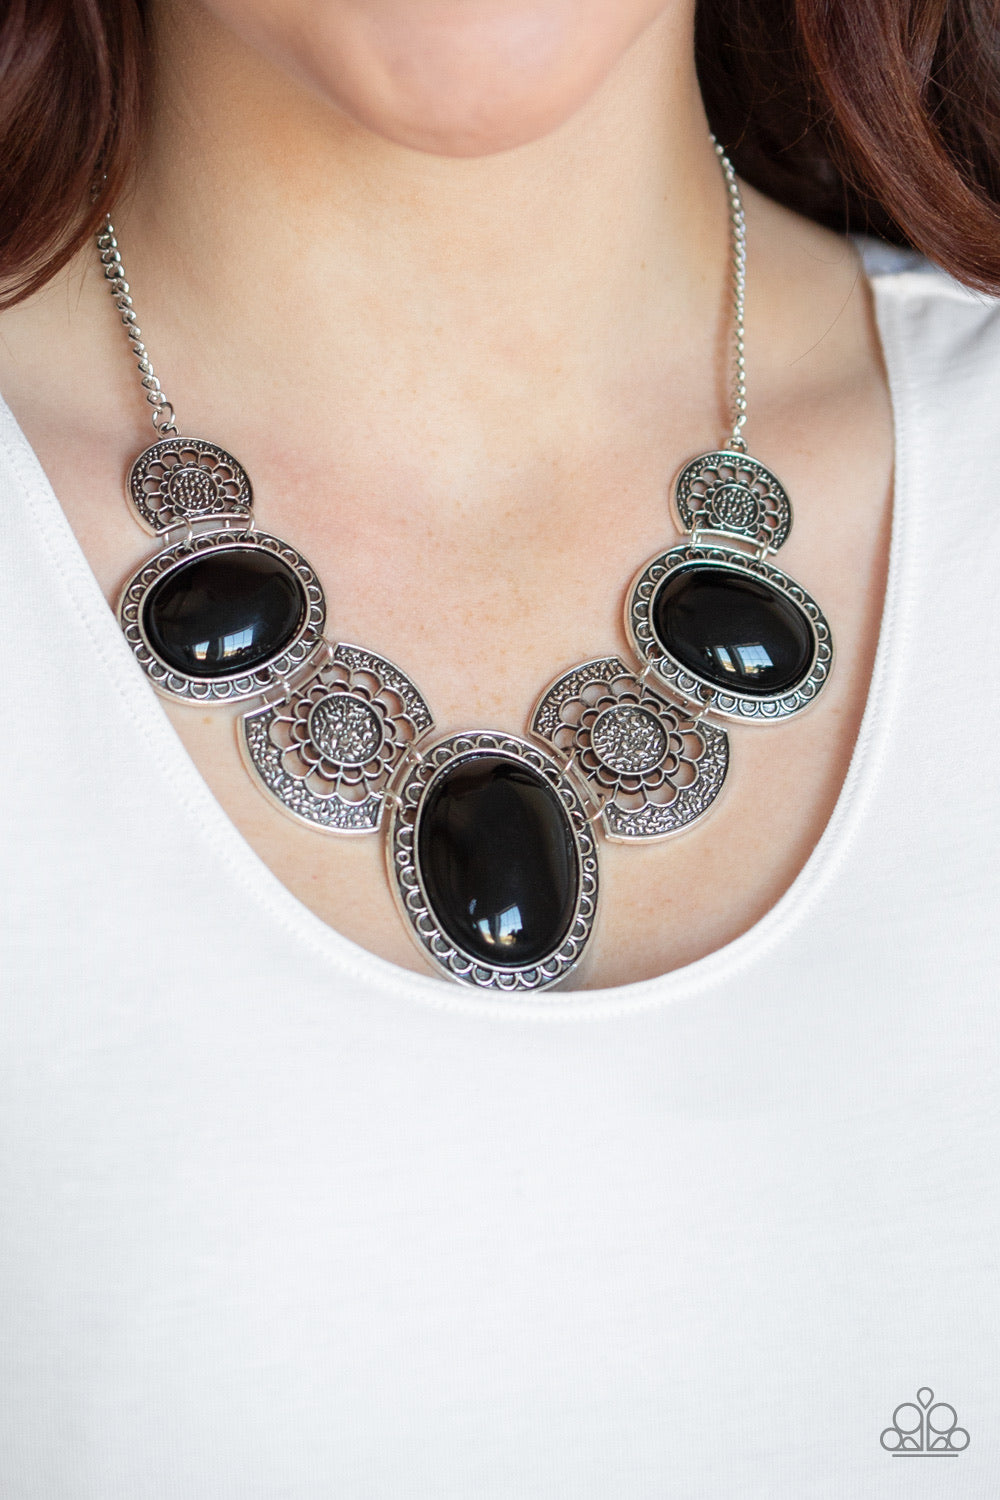 Paparazzi Jewelry Necklace The Medallion-aire - Black